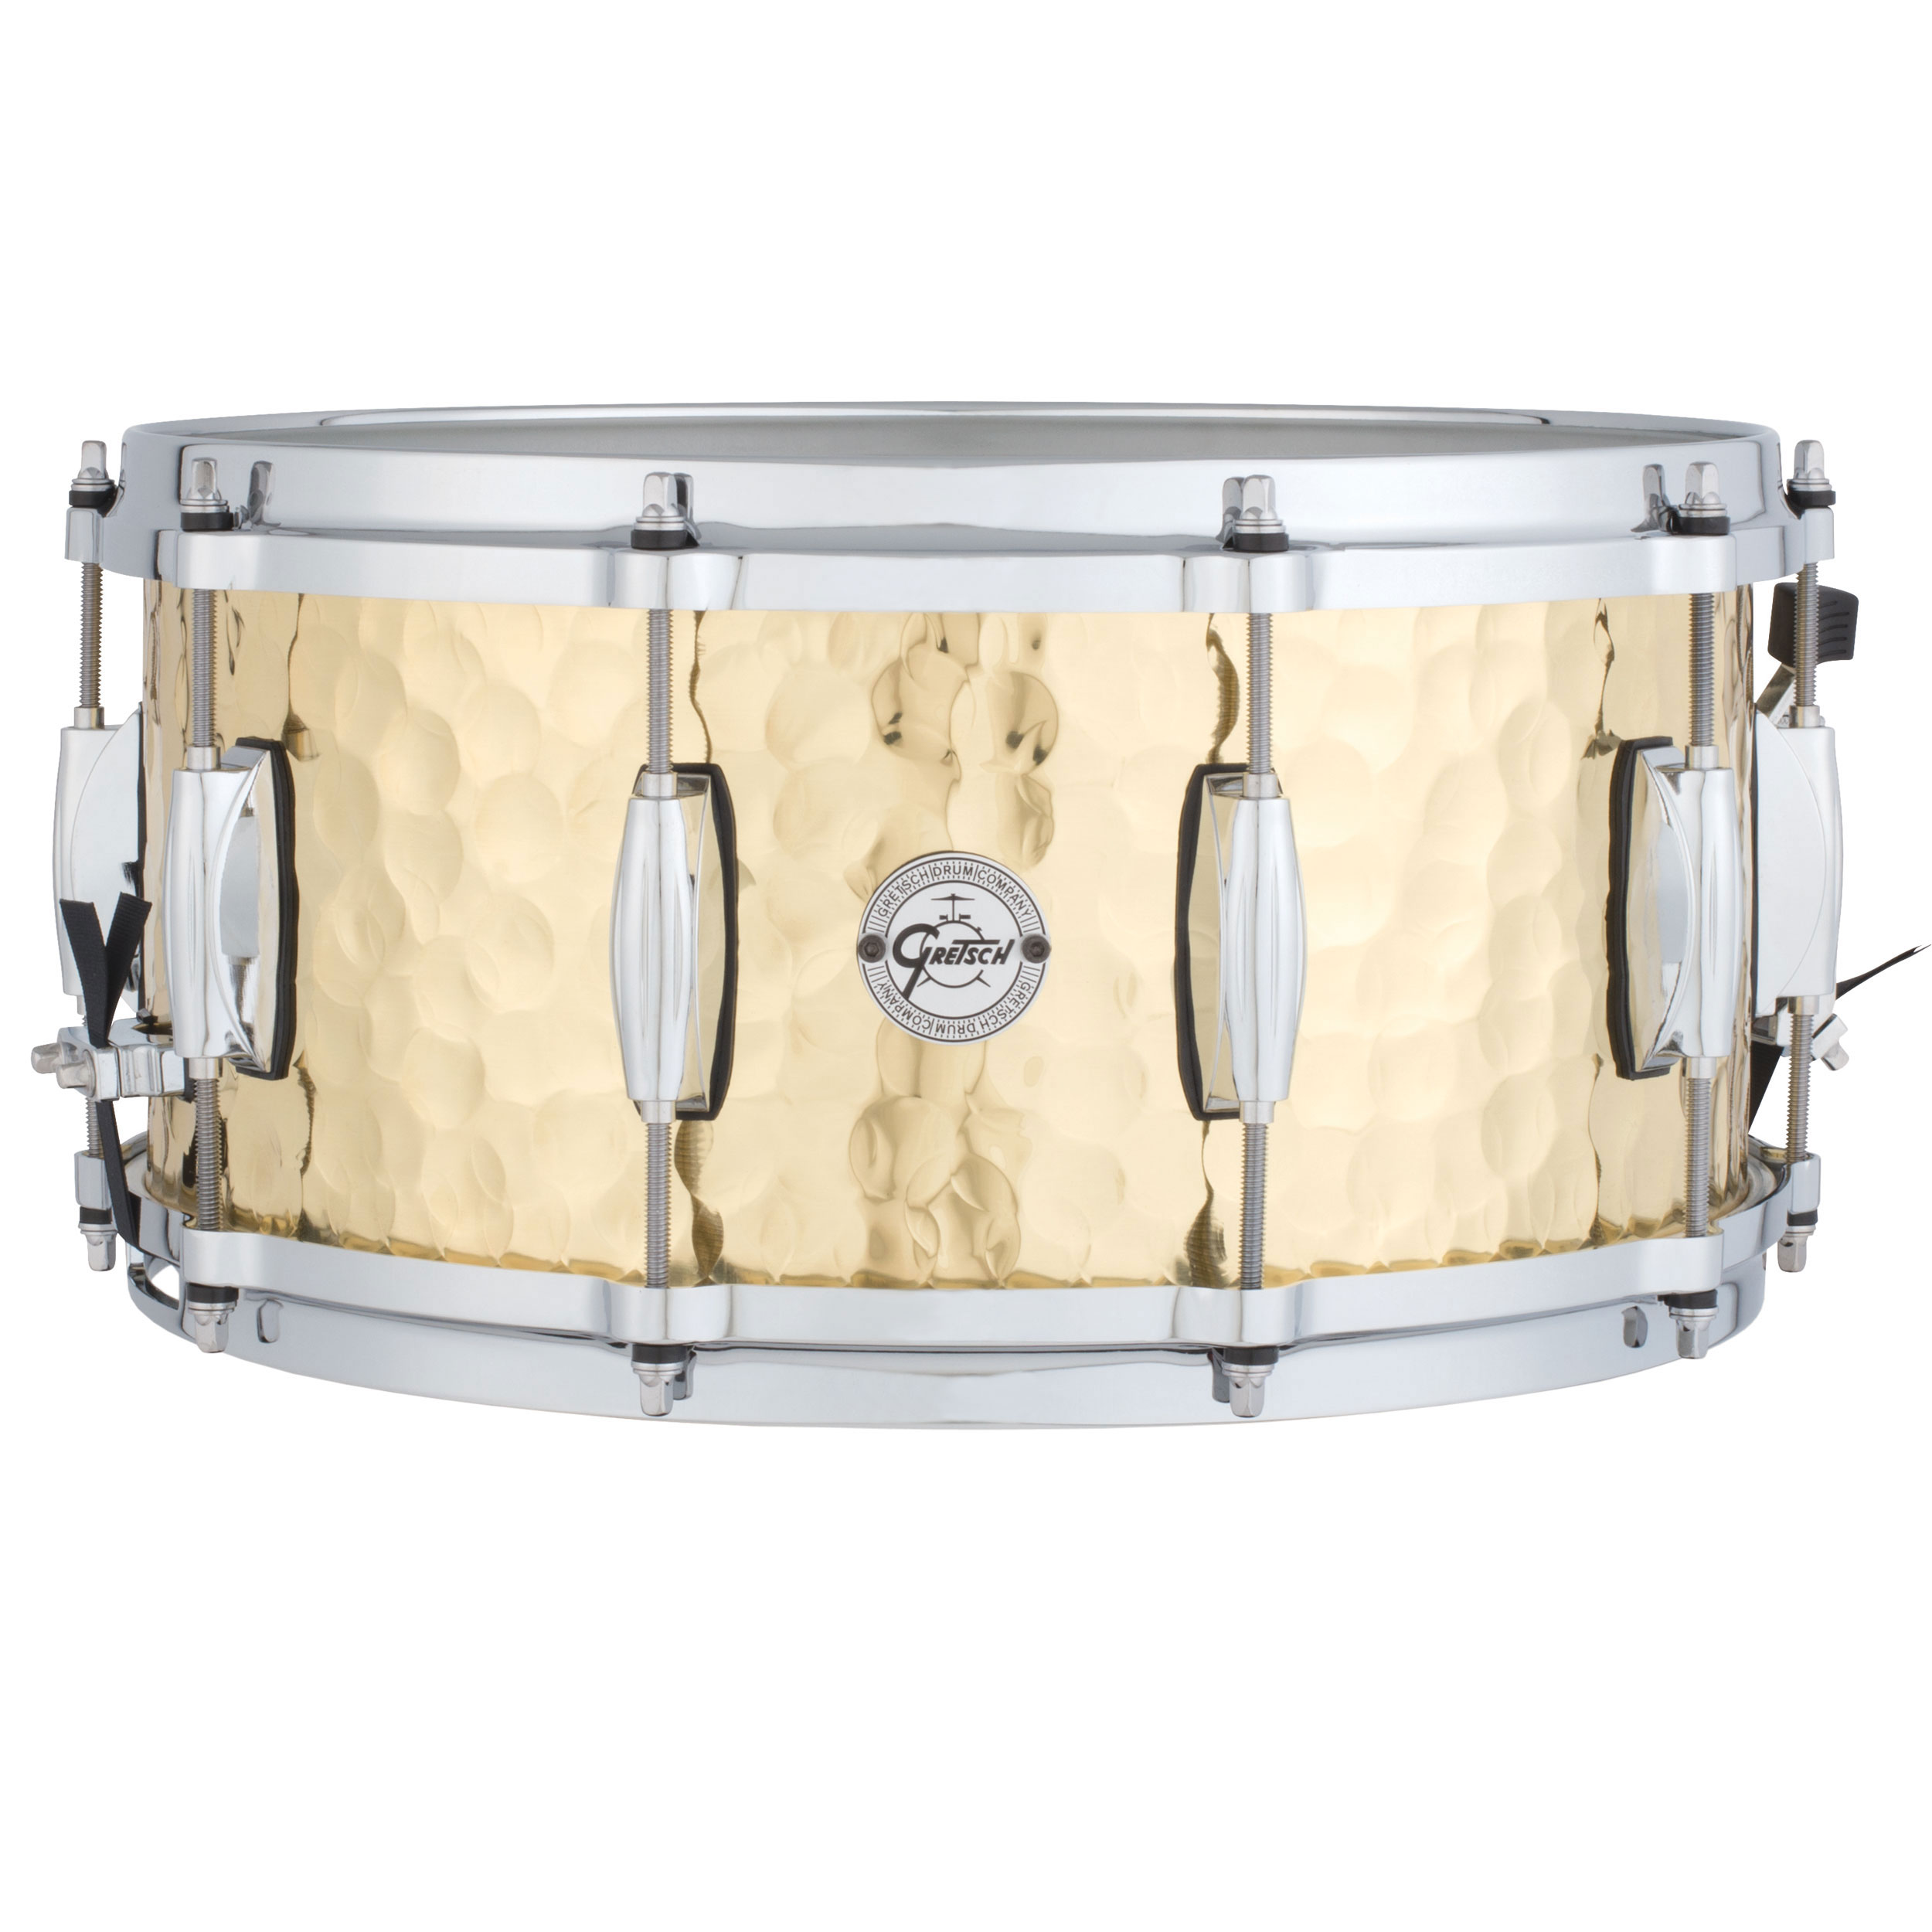 "Gretsch 6.5"" x 14"" Silver Series Hammered Brass Snare Drum"